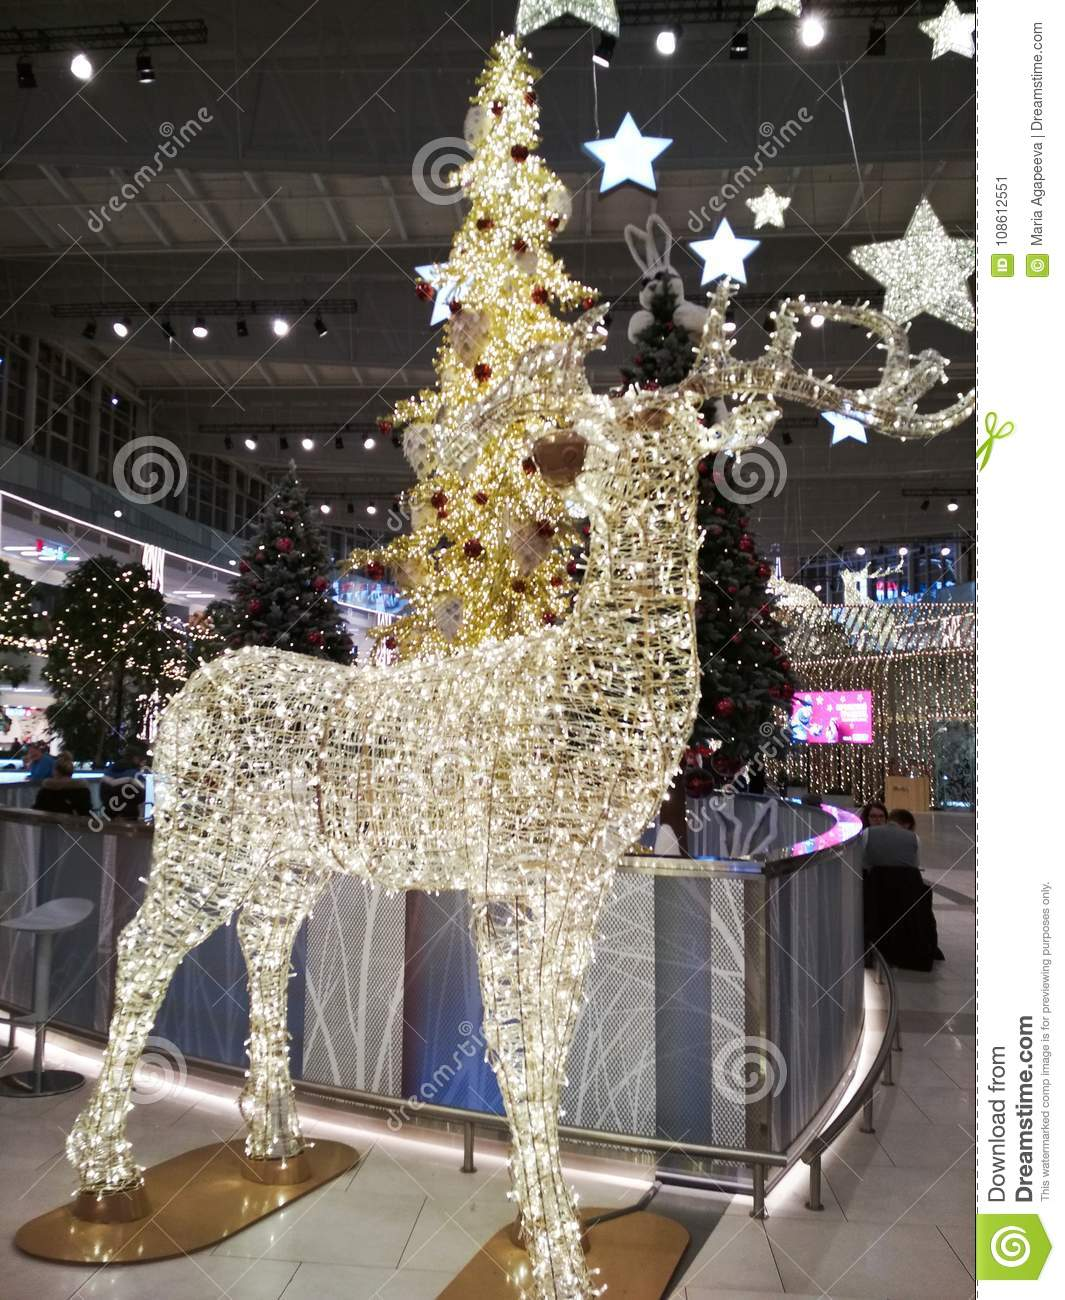 Large Christmas Decorations Editorial Photo Image Of Entertainment Electricity 108612551